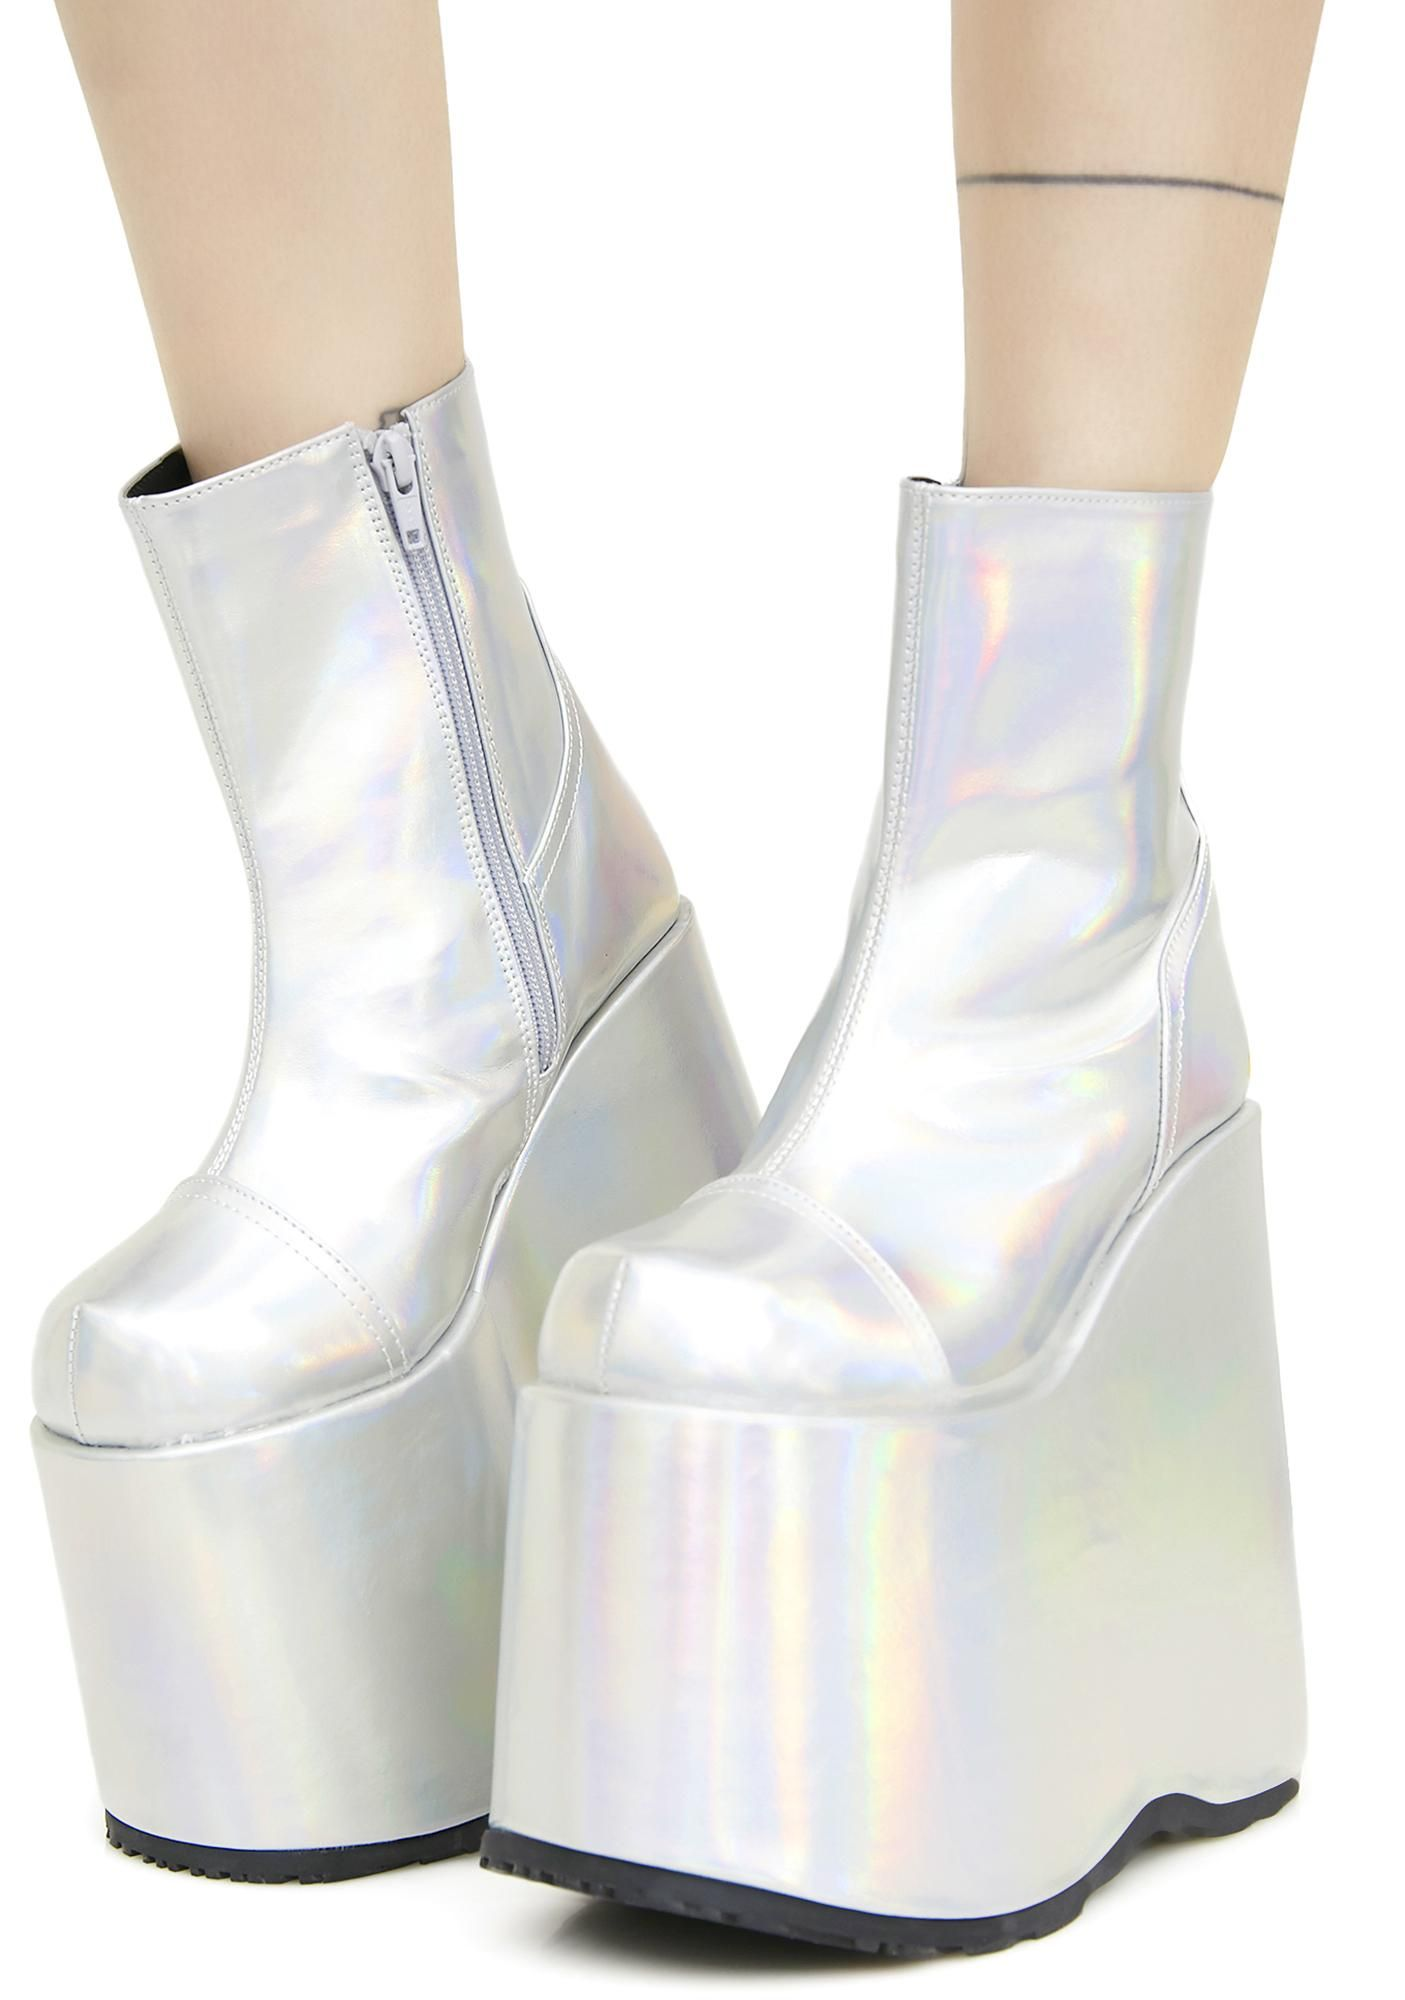 498d31401be1 Get yer intergalactic stomp on with these dope af boots featuring an ultra  shiny holographic construction